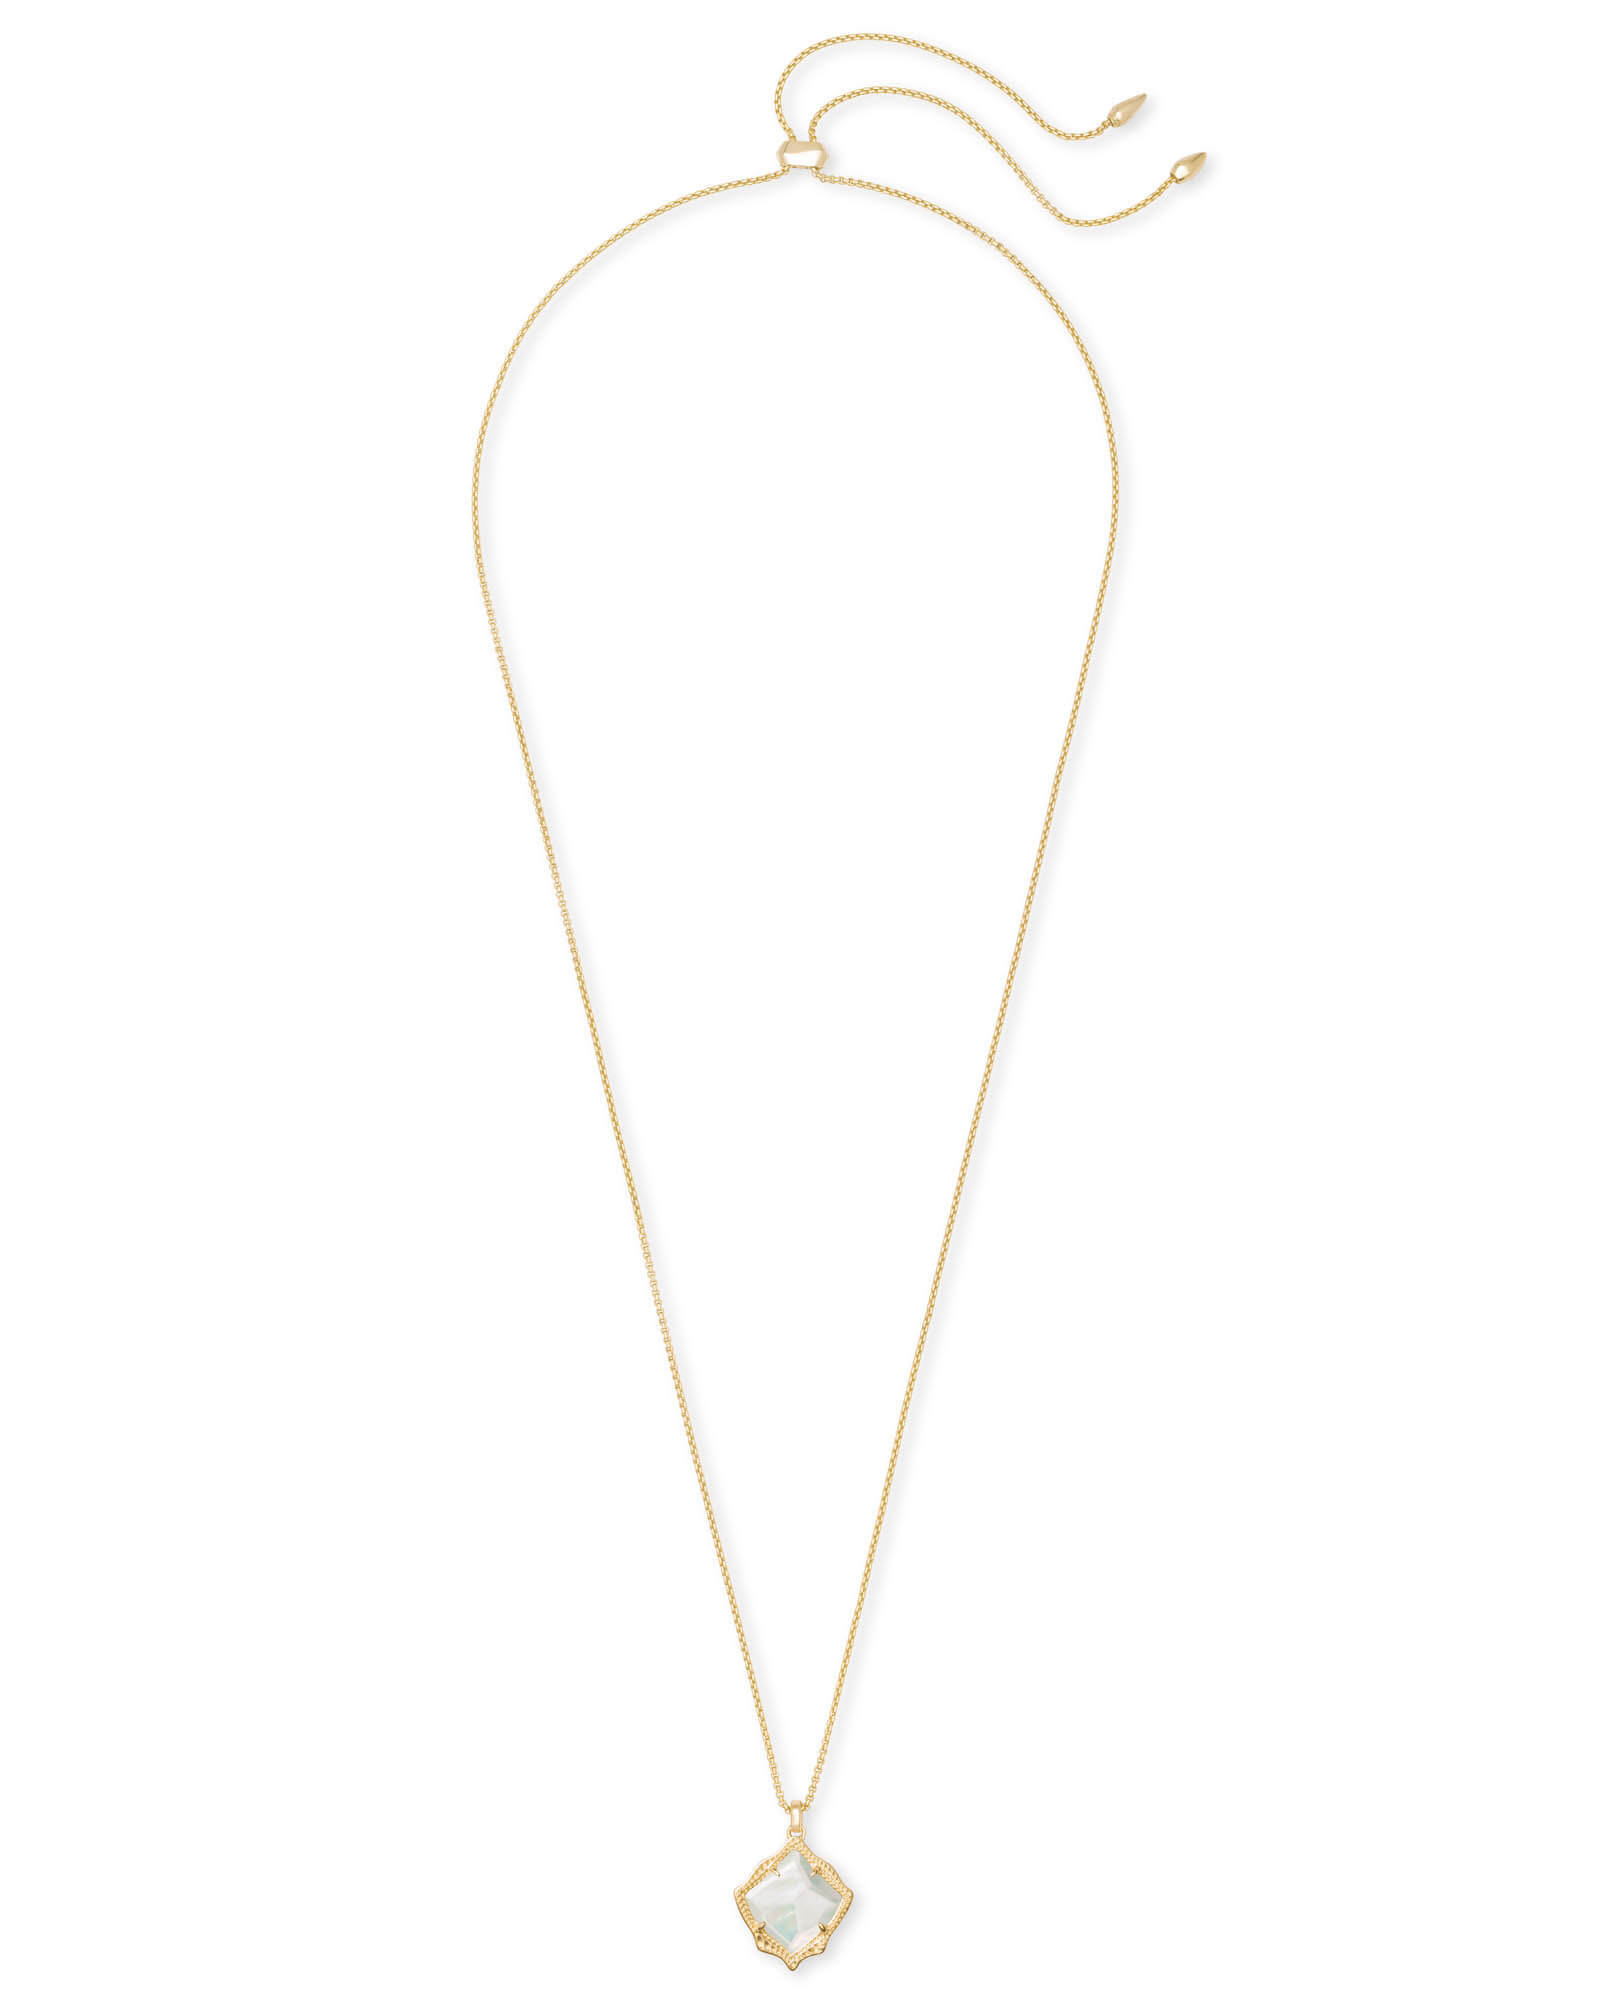 Kacey Long Pendant Necklace in Gold